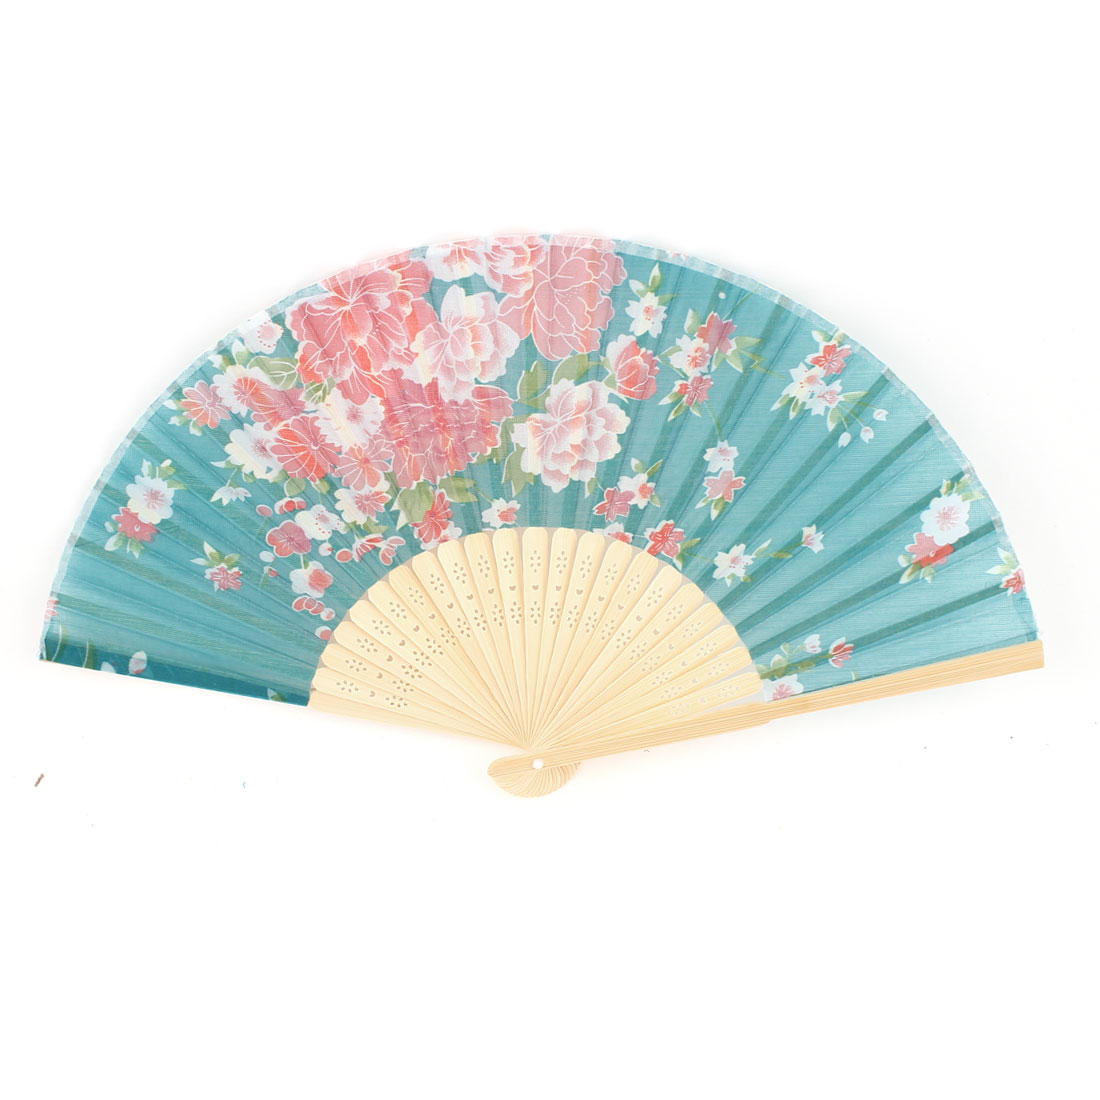 "14.2"" Teal Fabric Flower Print Bamboo Hollow Out Ribs Folding Hand Fan"